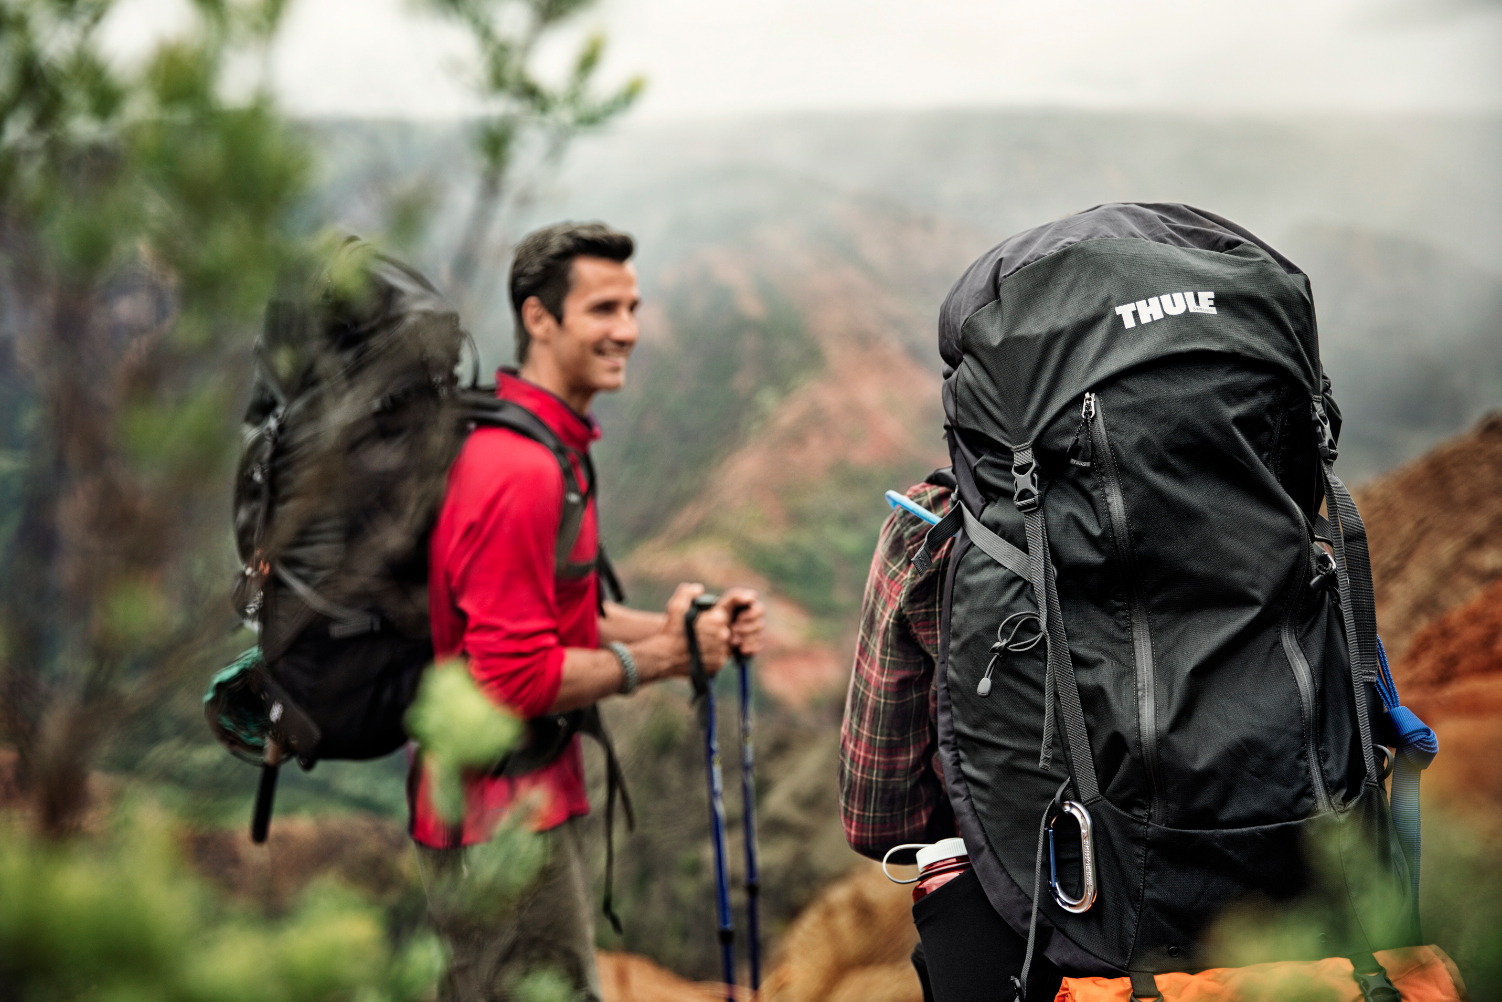 Thule backpacks - Adventure 52 magazine